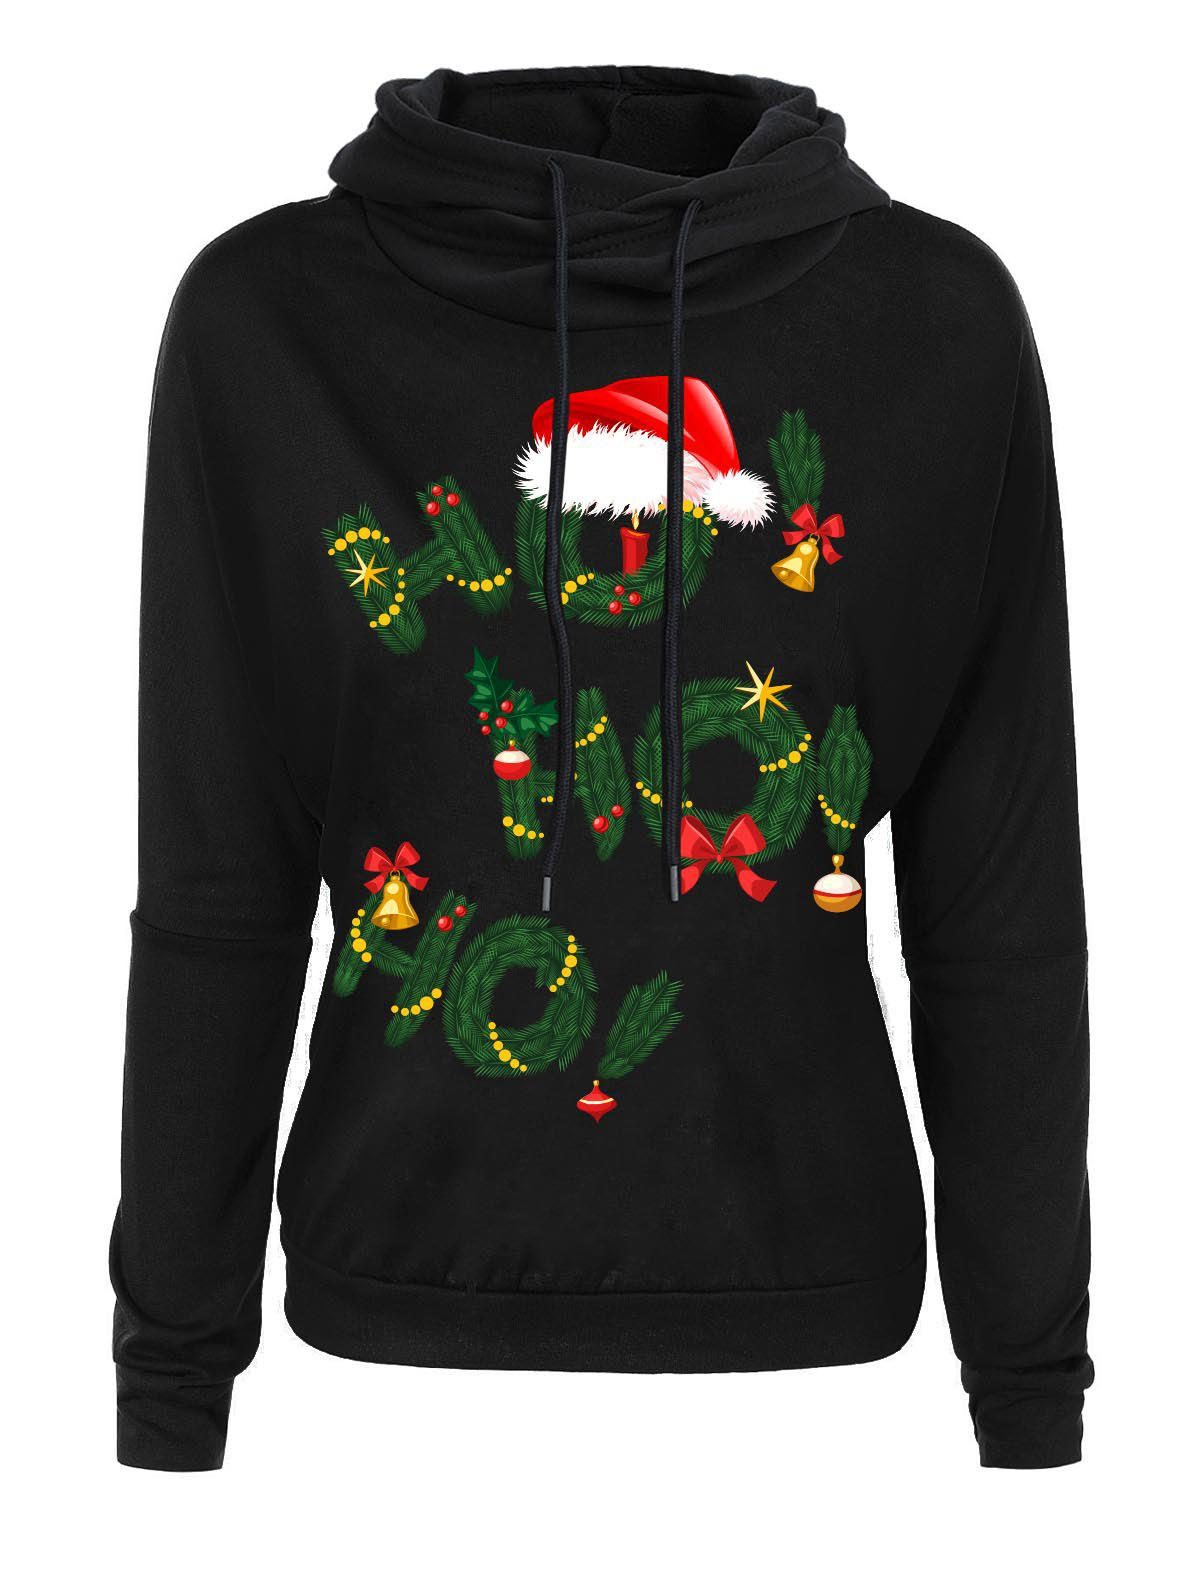 Christmas Grass Letters Print Drop Shoulder HoodieWOMEN<br><br>Size: 2XL; Color: BLACK; Material: Polyester; Shirt Length: Regular; Sleeve Length: Full; Style: Casual; Pattern Style: Letter,Print; Season: Fall,Spring,Winter; Weight: 0.3600kg; Package Contents: 1 x Hoodie;